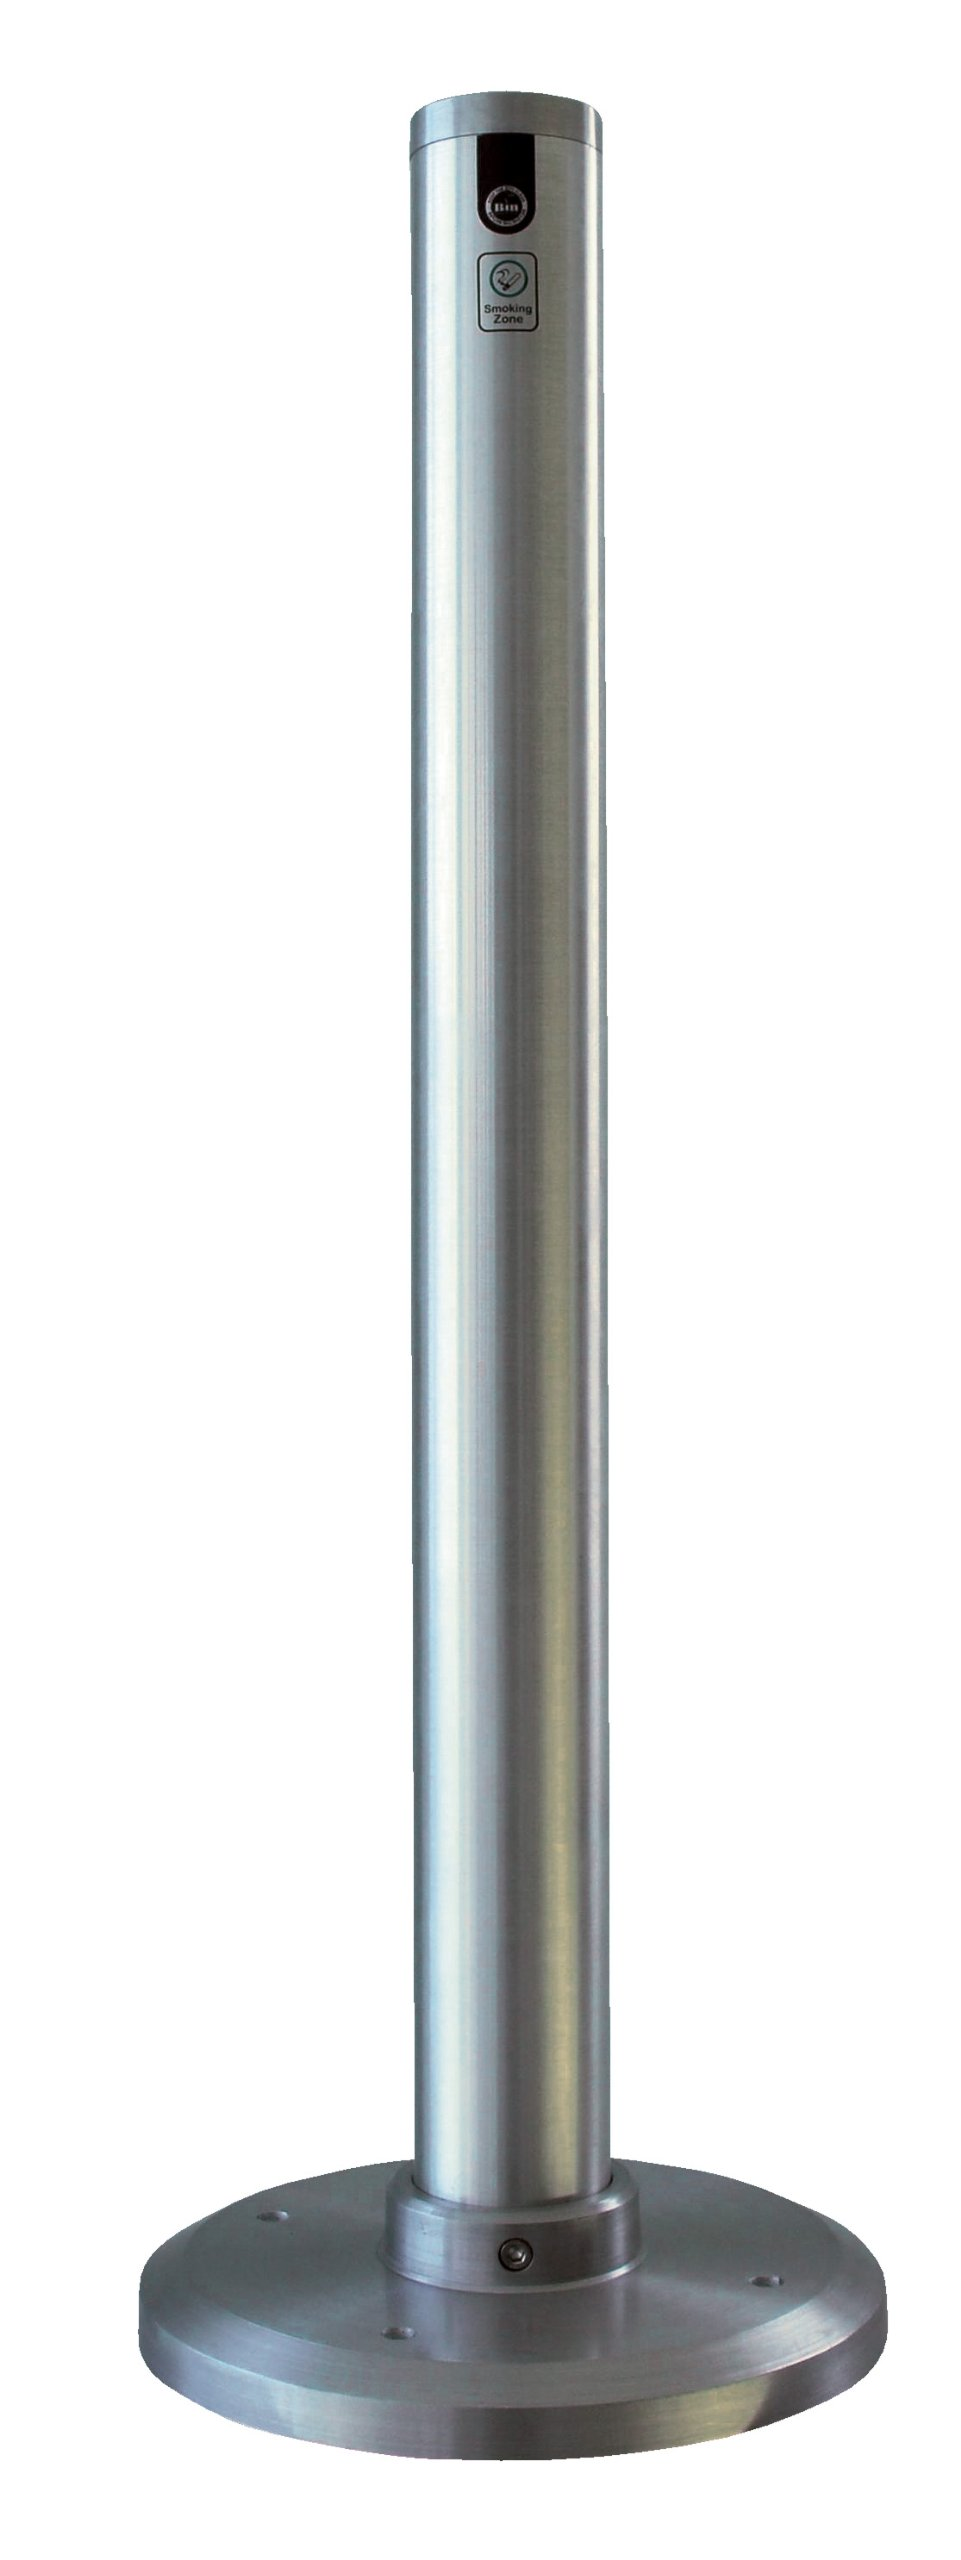 Vestil SMK-F-35A Floor Mounted Aluminum Smoker Bollard, 3-1/4'' OD, 35'' Height